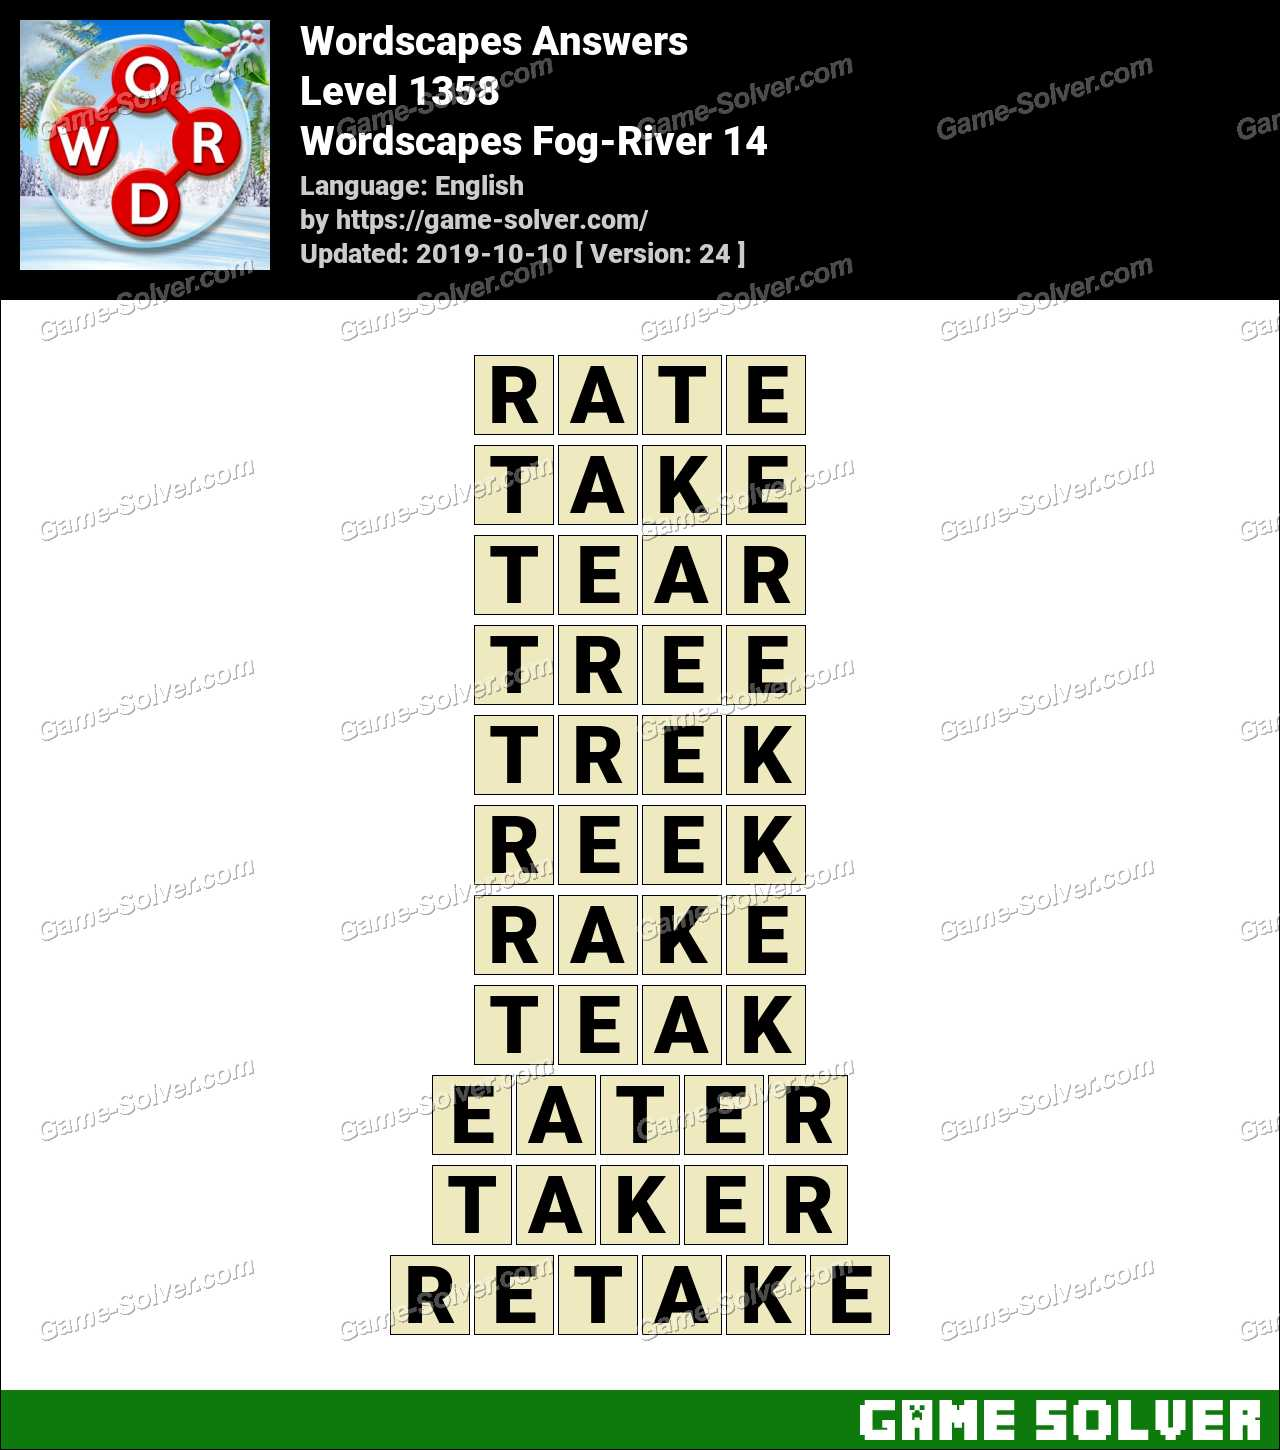 Wordscapes Fog-River 14 Answers